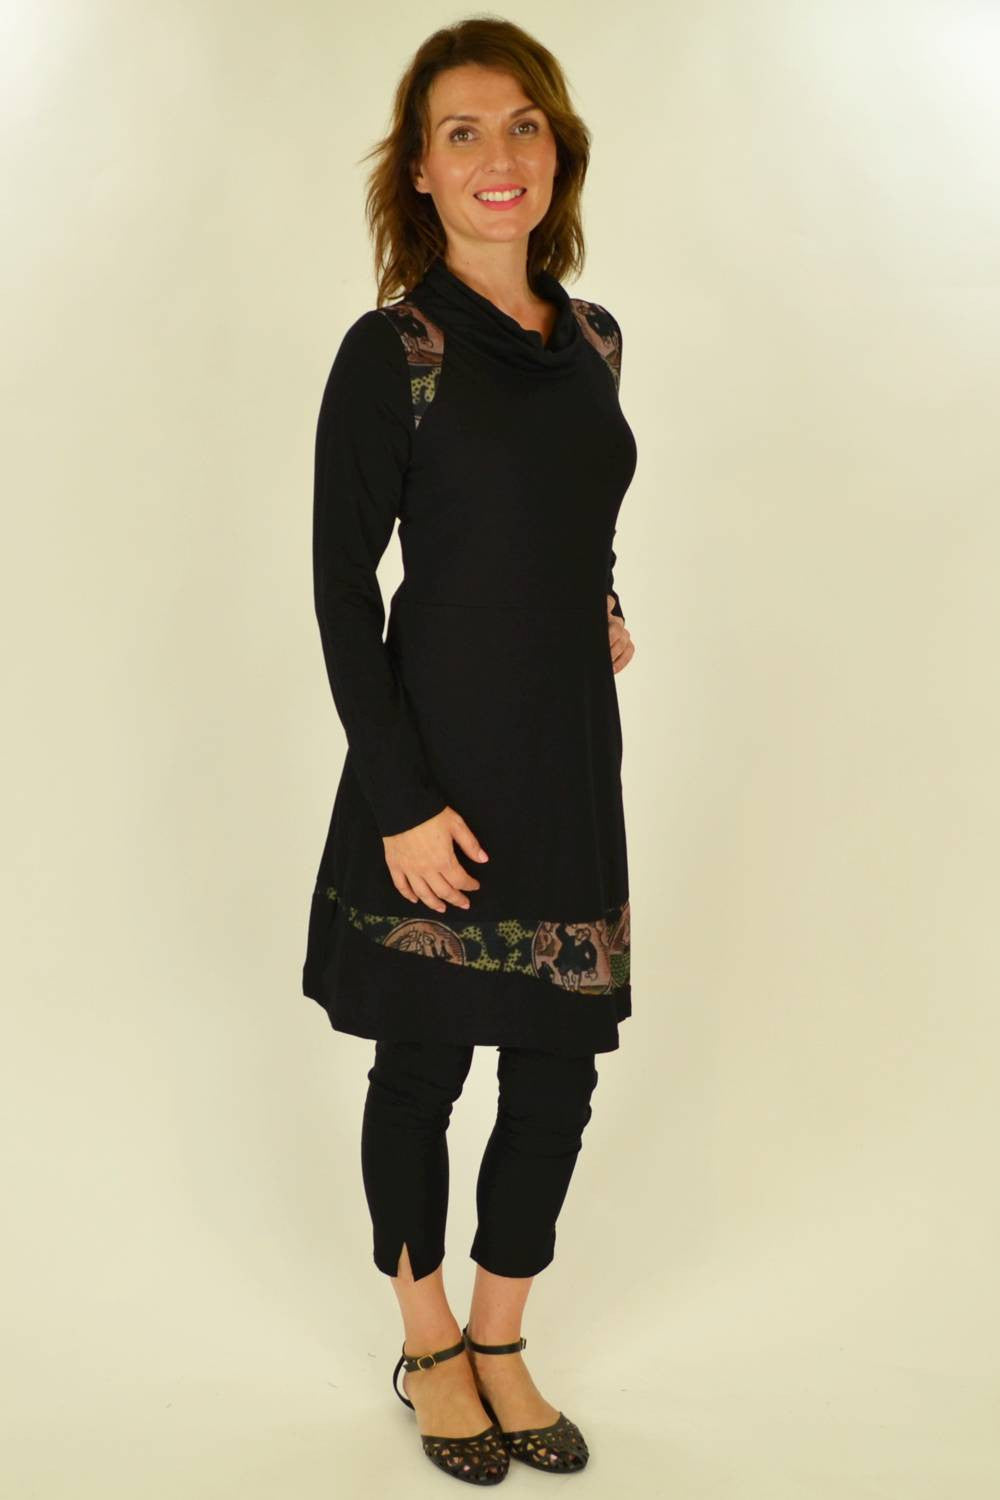 Holmes Fallon Black Sail Away Tunic - at I Love Tunics @ www.ilovetunics.com = Number One! Tunics Destination